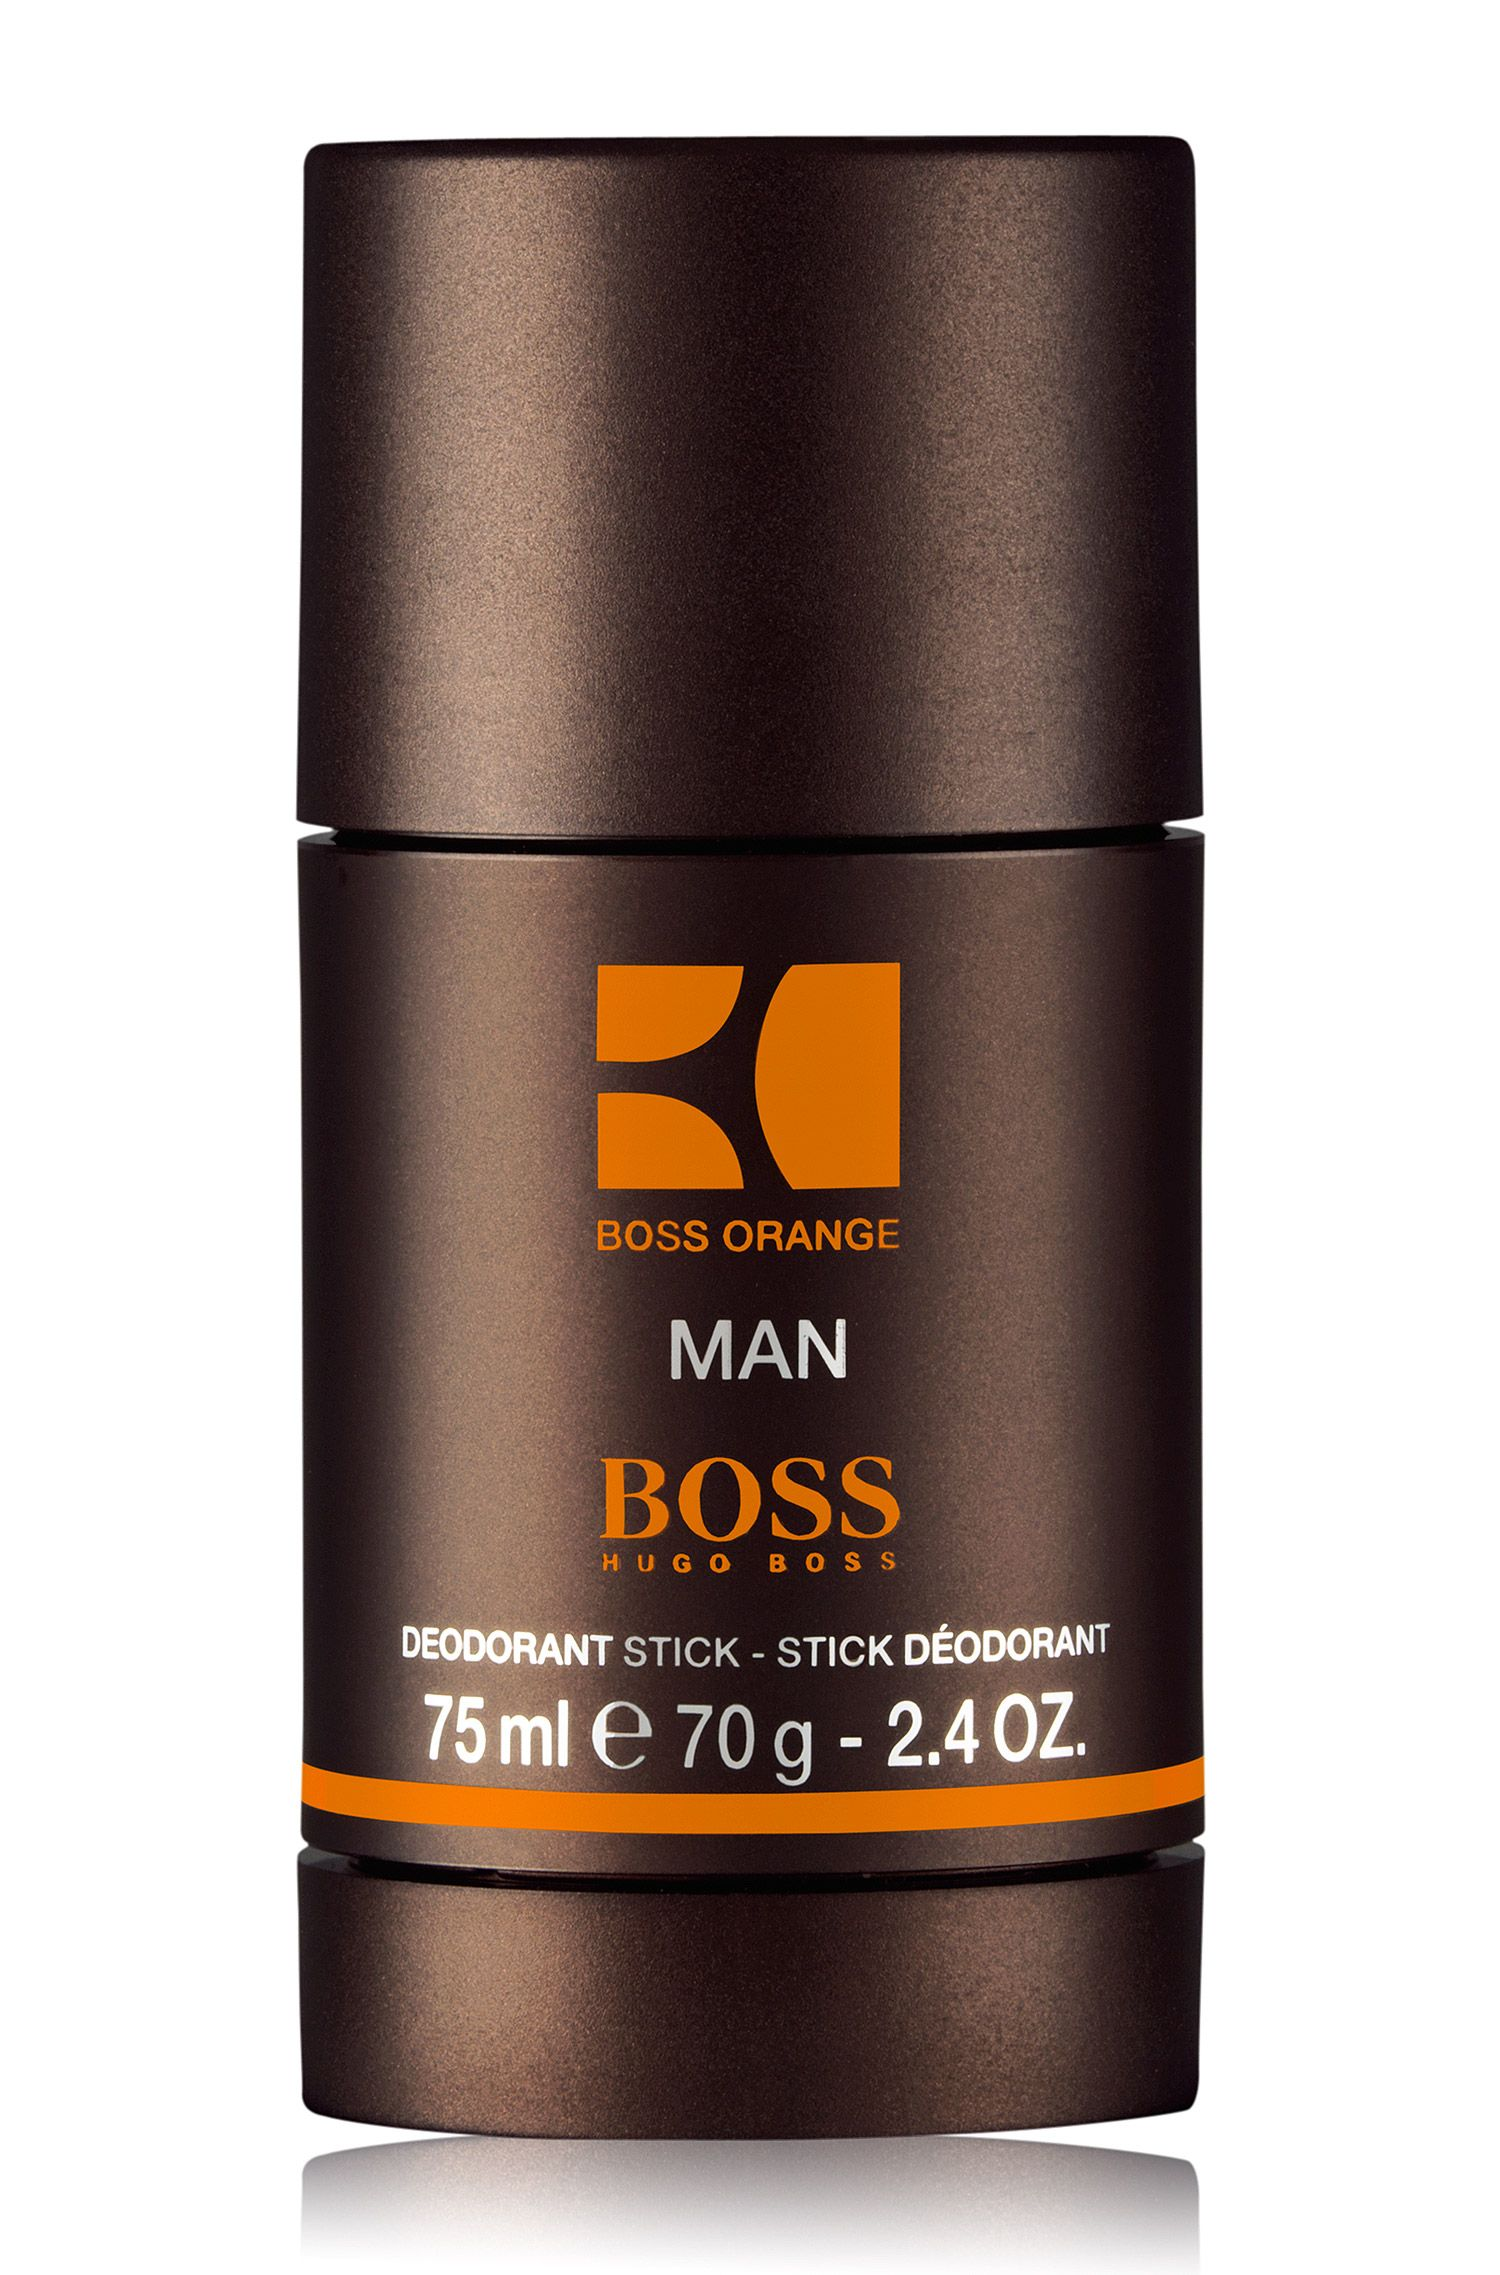 'BOSS Orange Man' Deostick